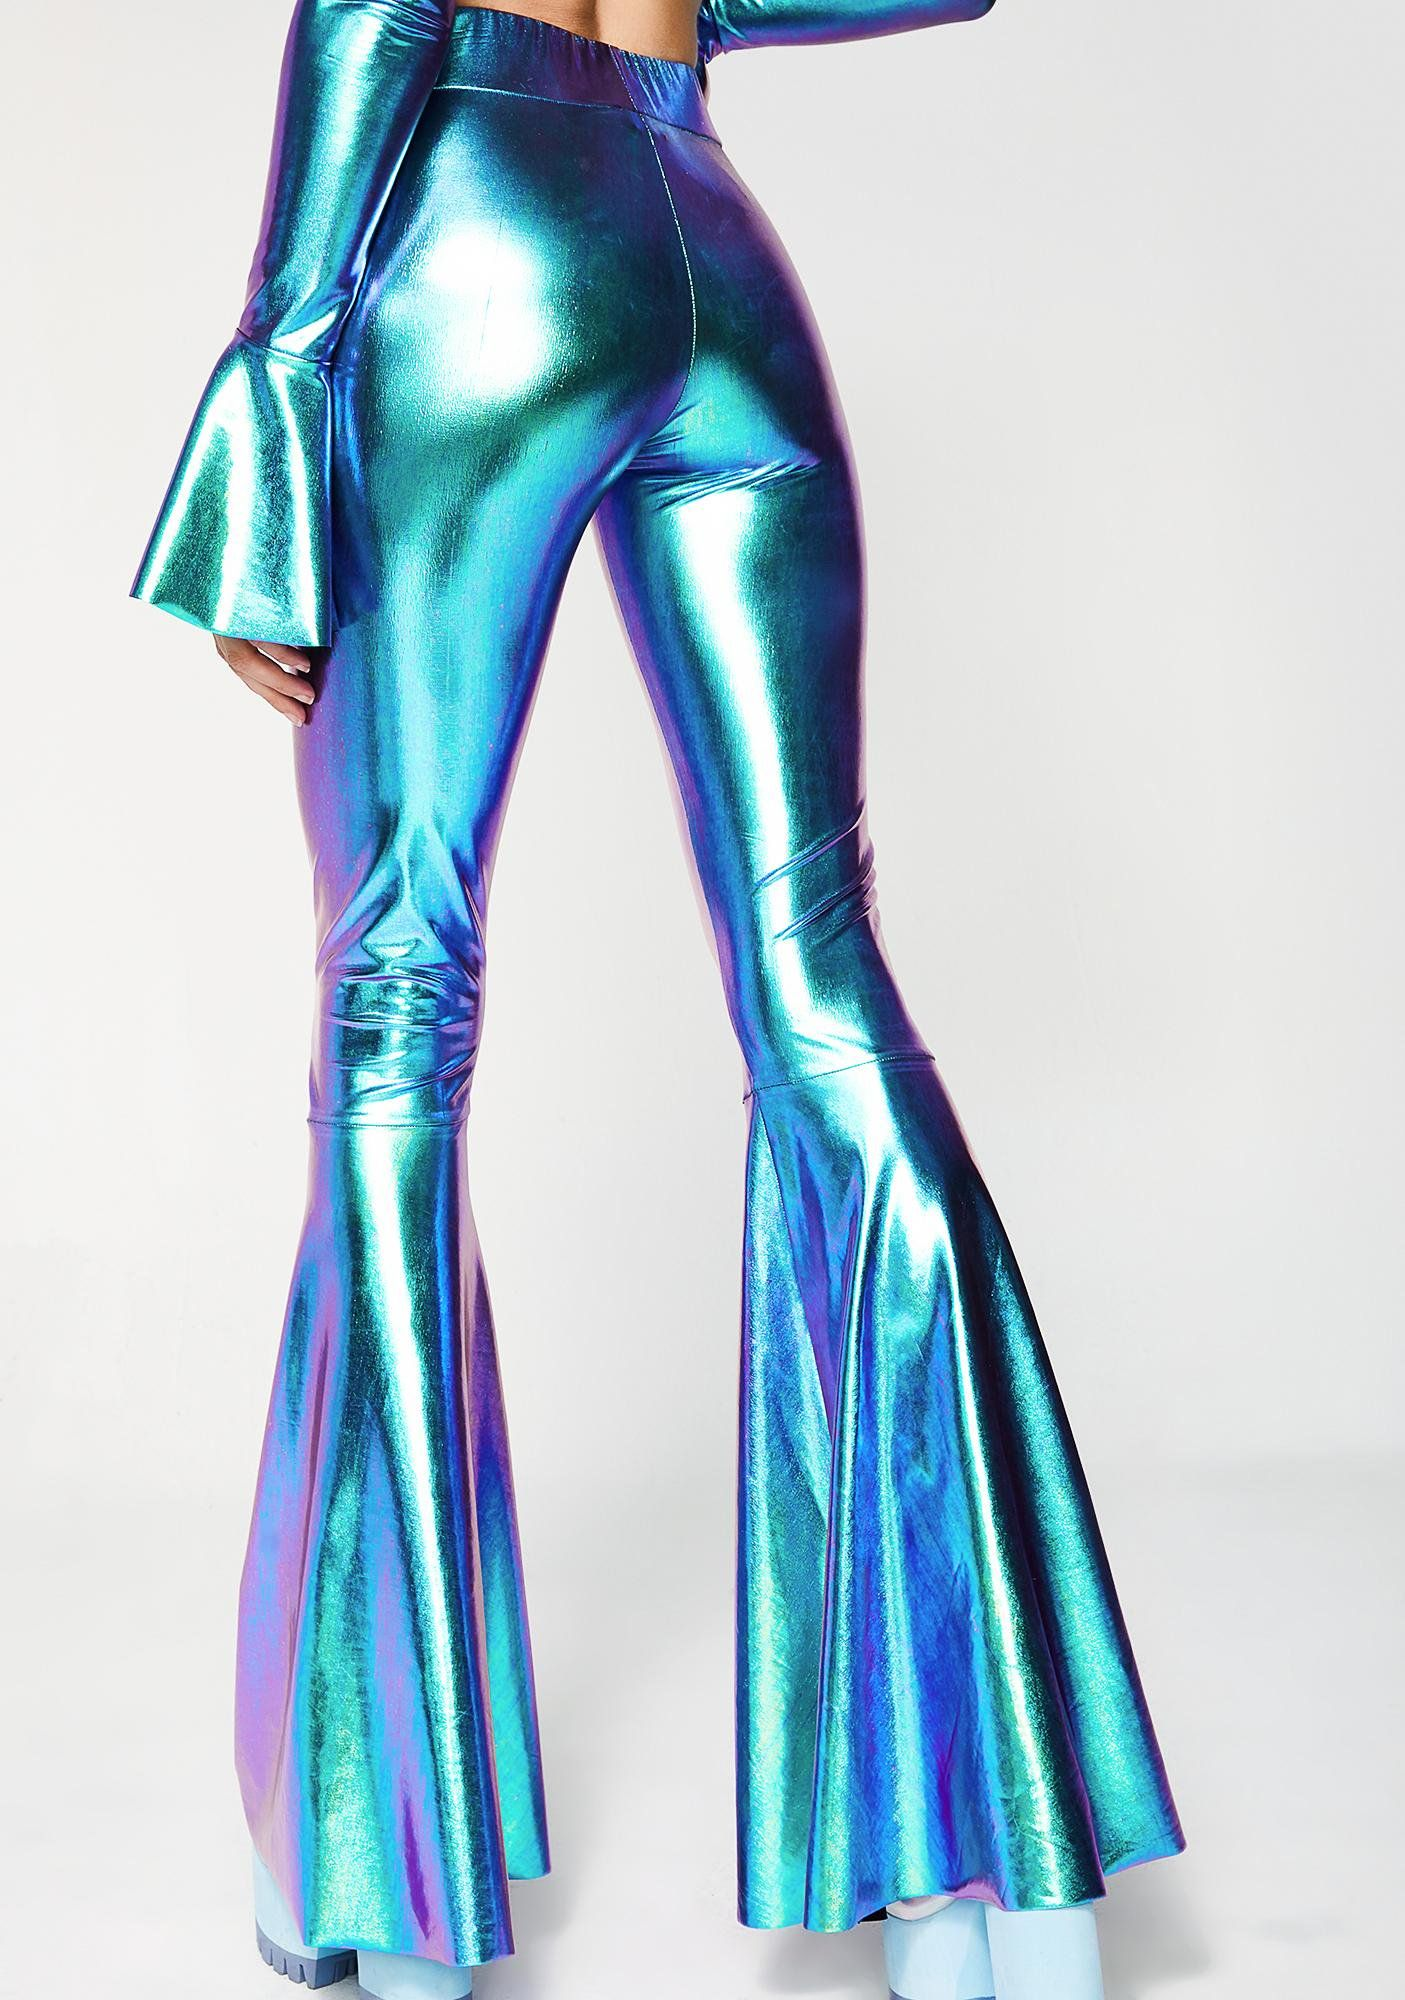 Shimmy Shimmy Ya Bell Bottoms | Bell bottoms, Iridescent and Rave ...